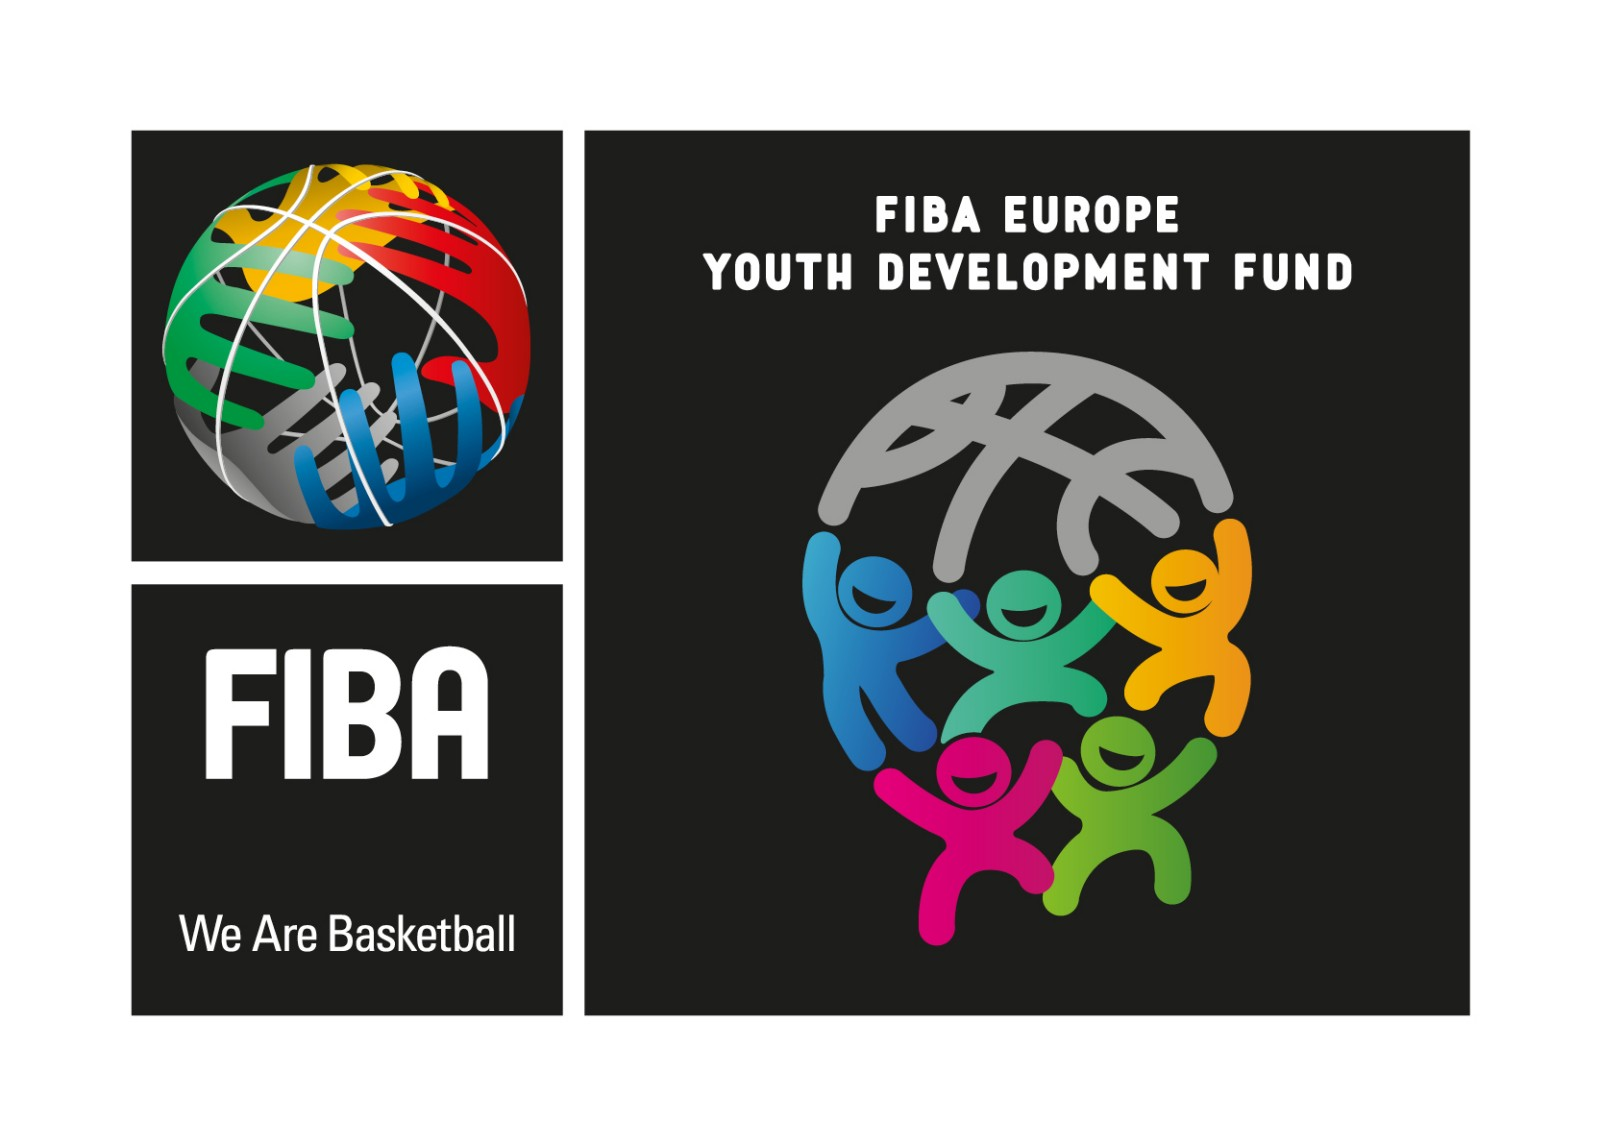 fiba youth deveopment fund